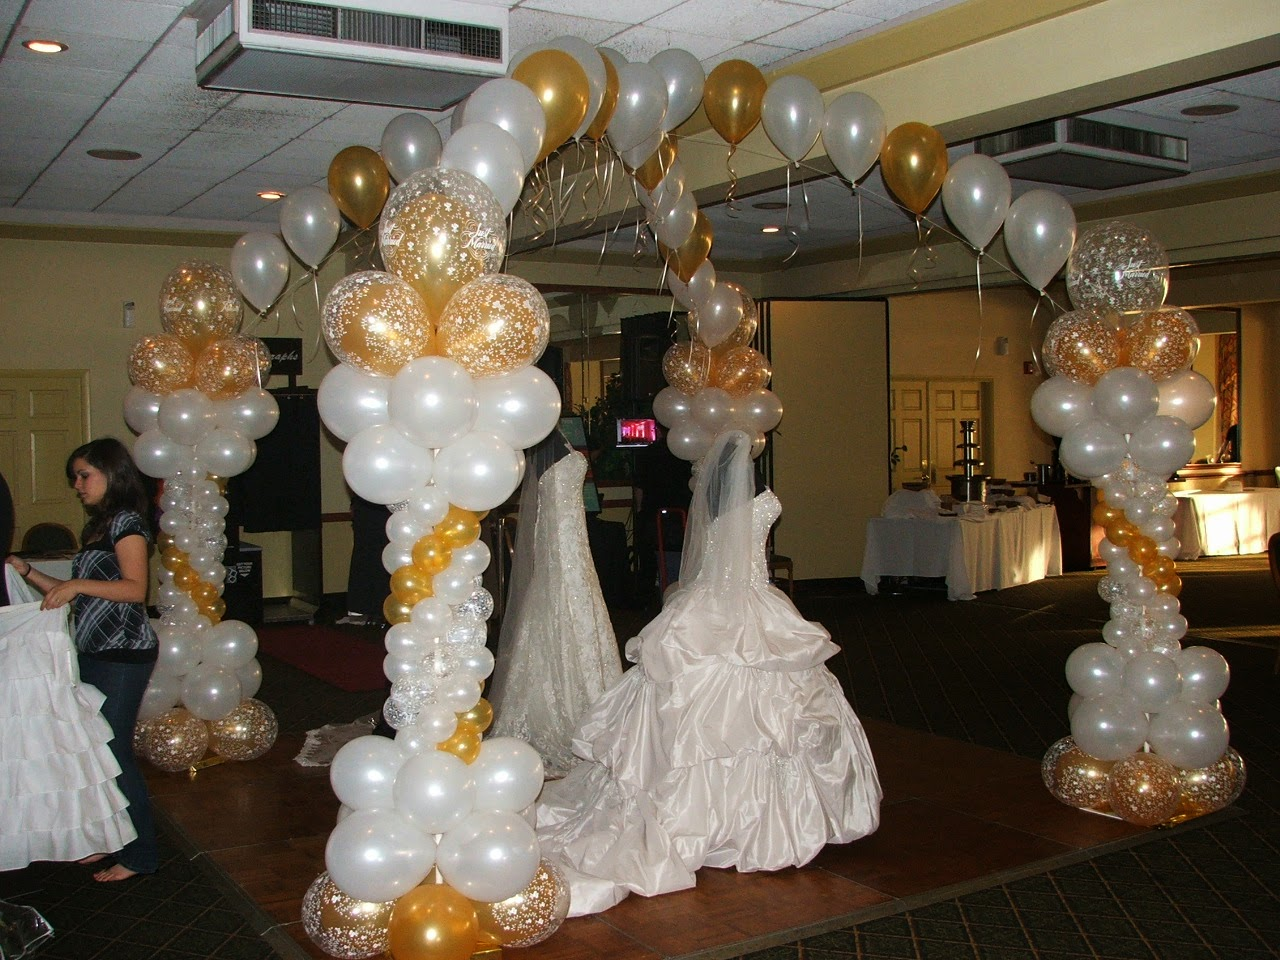 Wedding dance floor balloon arch